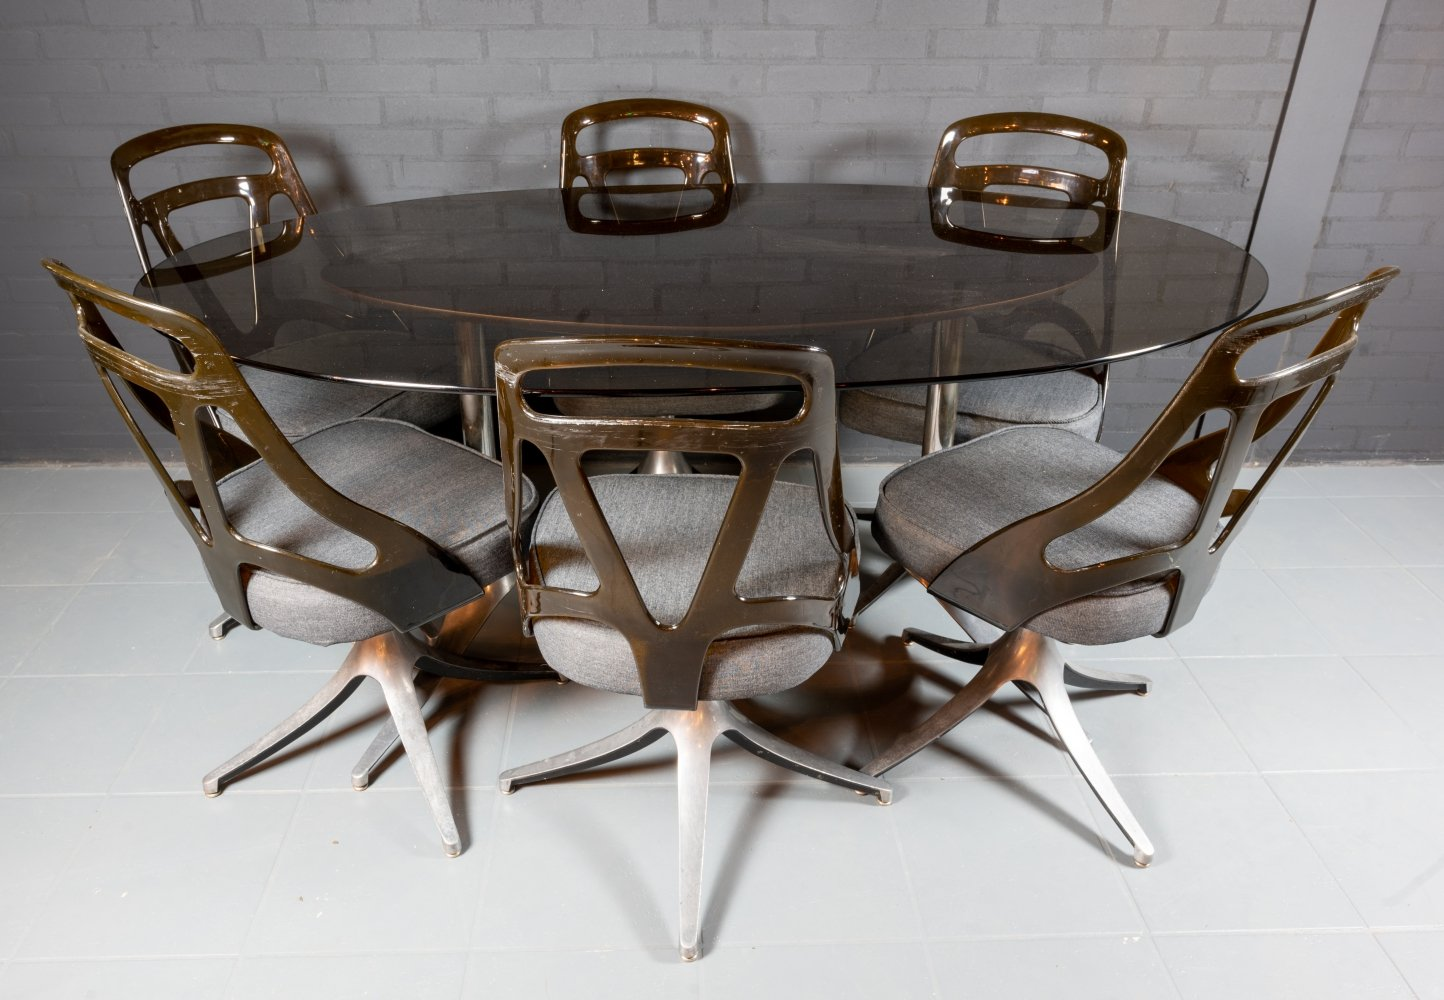 Retro dining set with 6 chairs by Chromcraft, USA 1970s